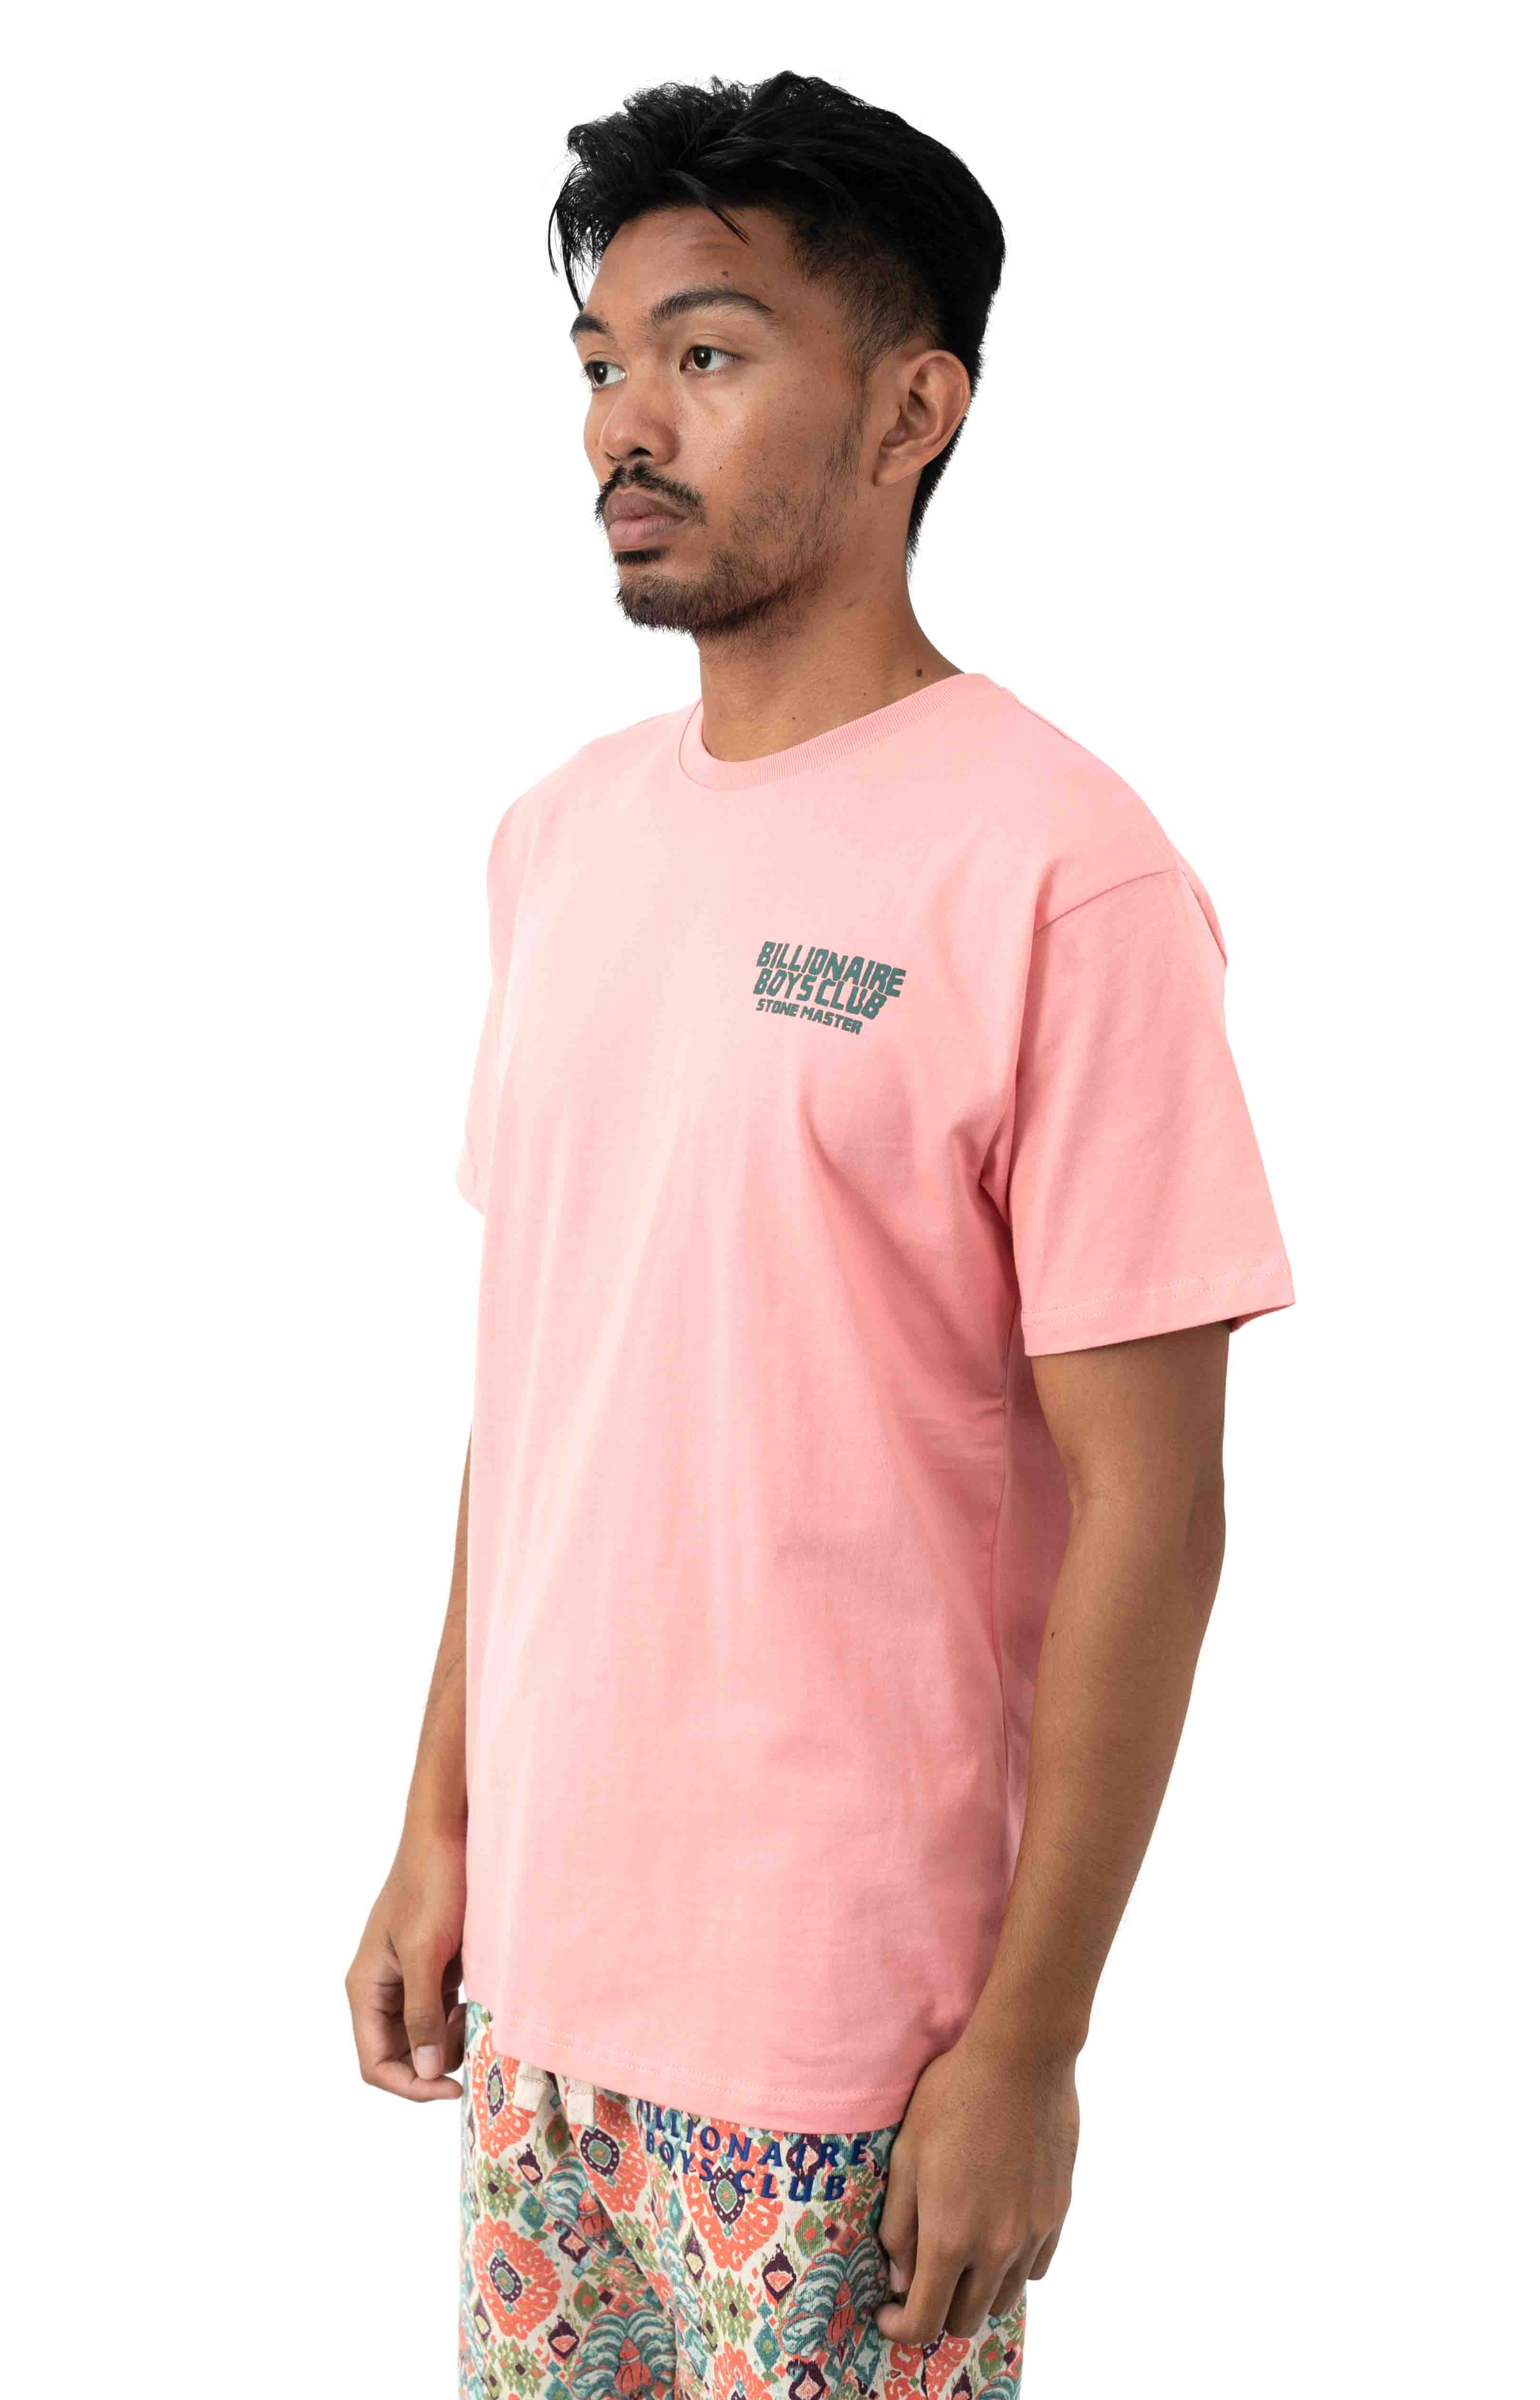 BB Space Rock T-Shirt - Strawberry Ice  3